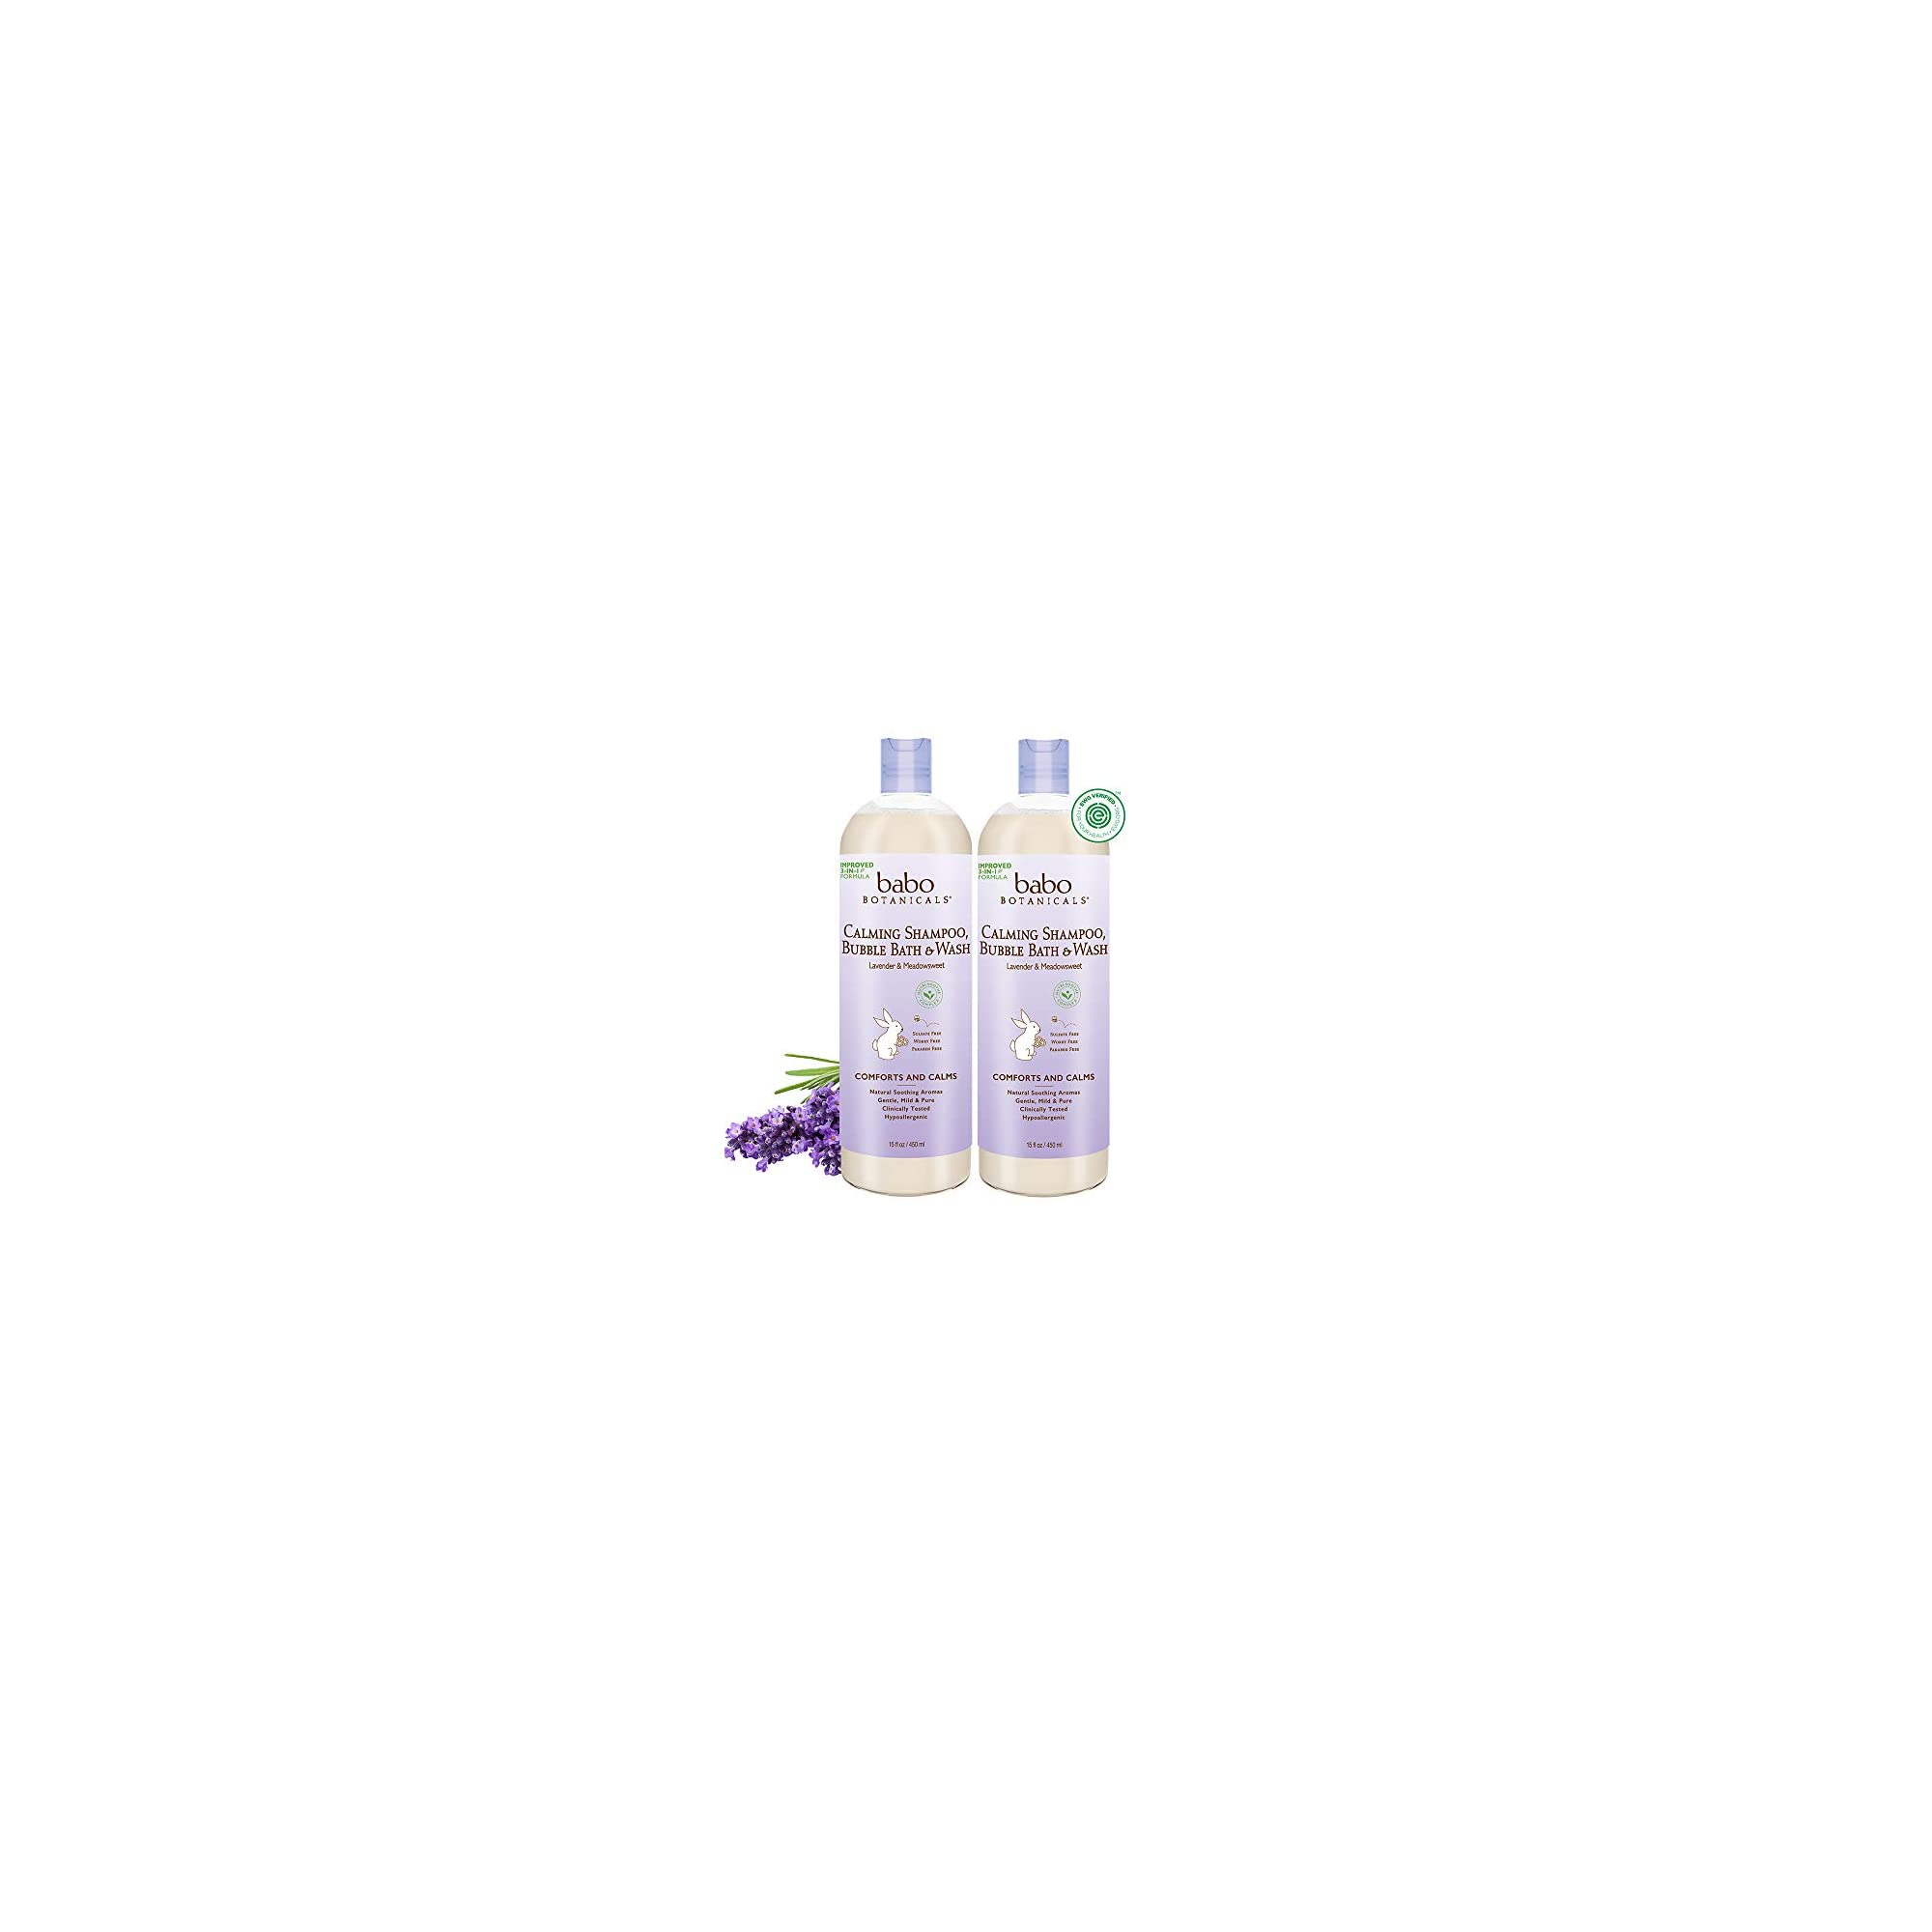 Babo Botanicals Calming 3-in-1 Shampoo, Bubble Bath & Wash with French Lavender and Organic Meadowsweet, Hypoallergenic, Vegan, For Babies and Kids – 2-Pack 15 oz.